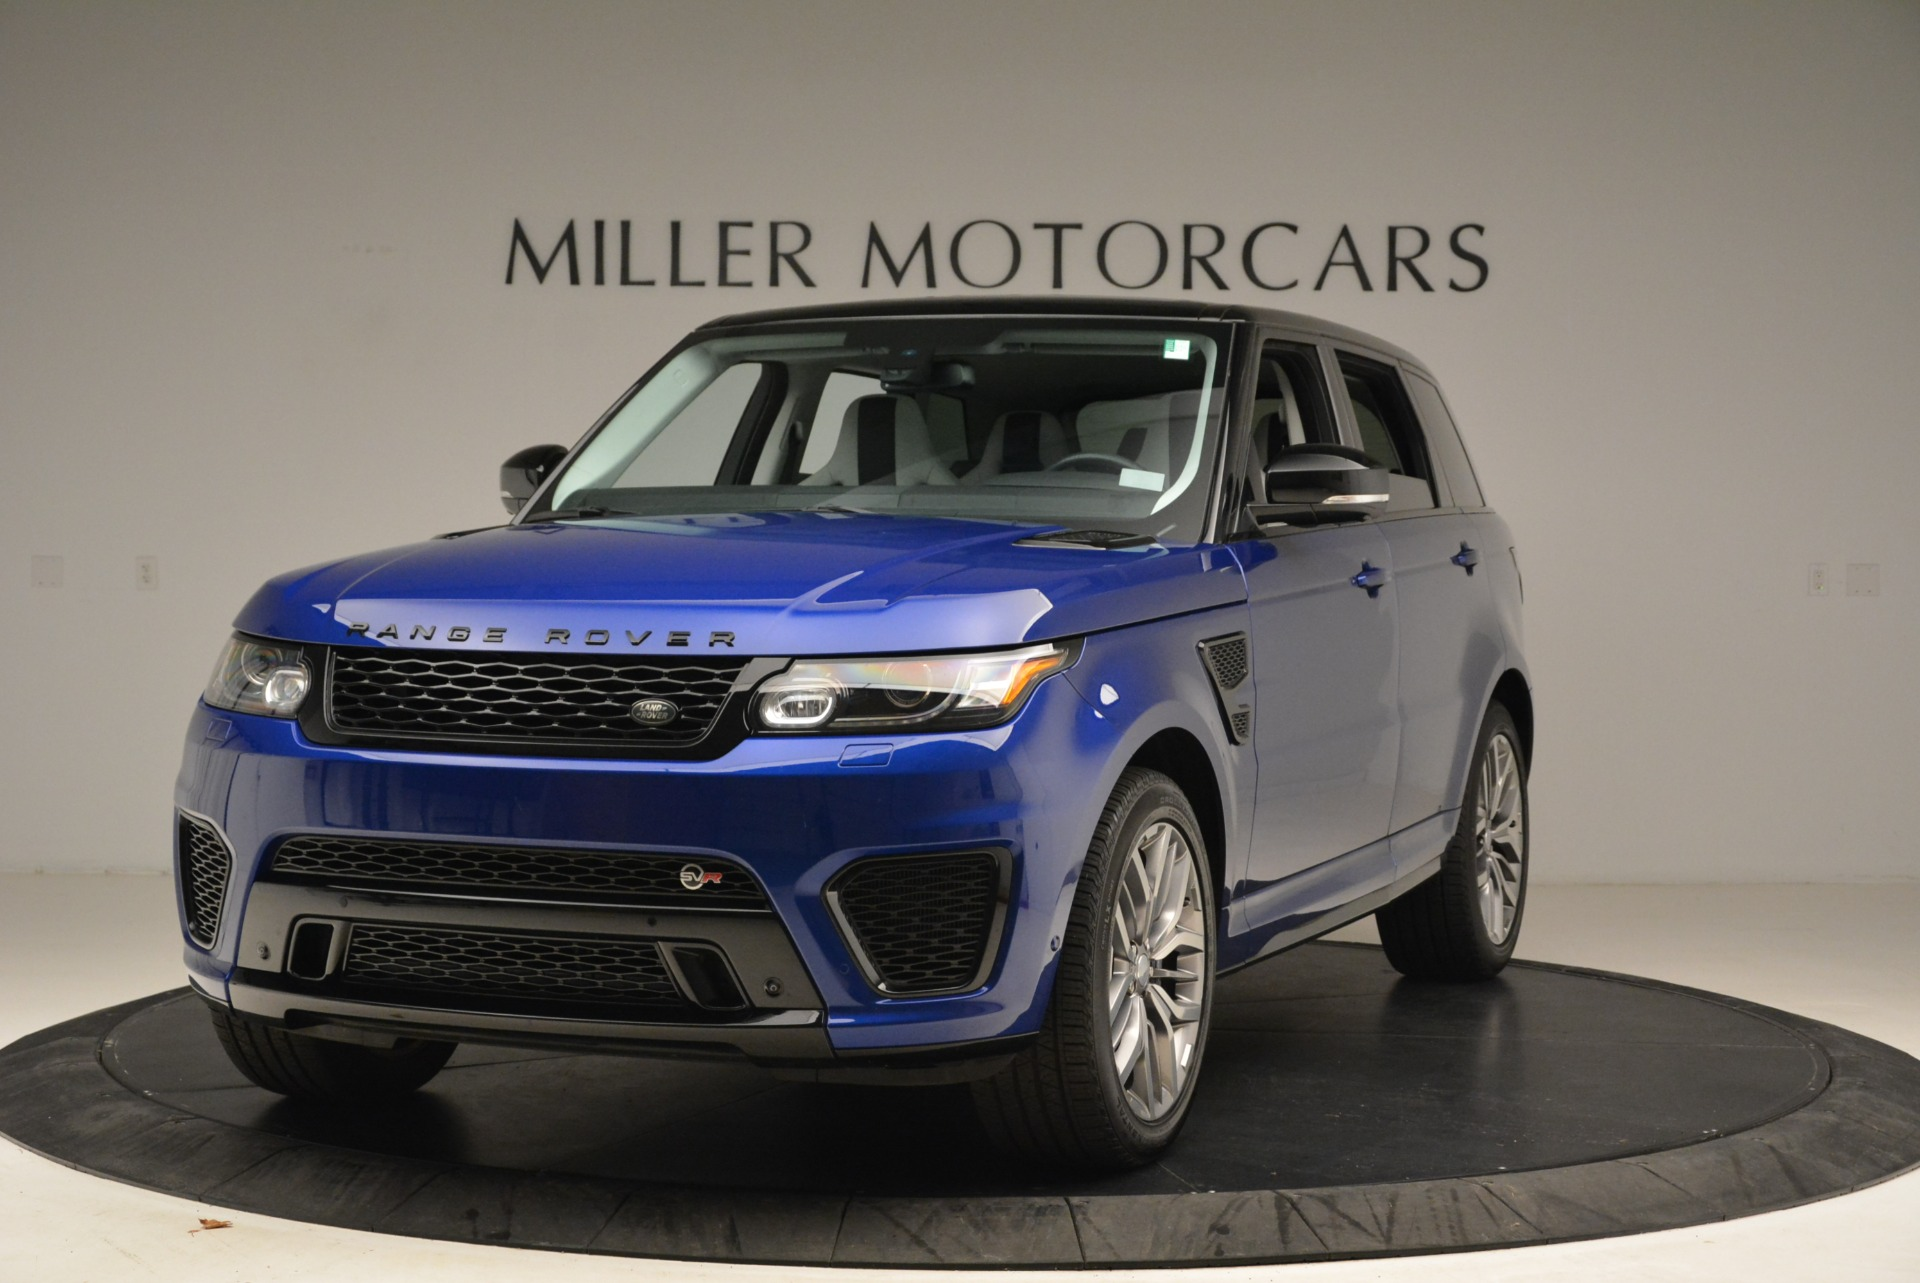 Used 2015 Land Rover Range Rover Sport SVR for sale Sold at Bentley Greenwich in Greenwich CT 06830 1